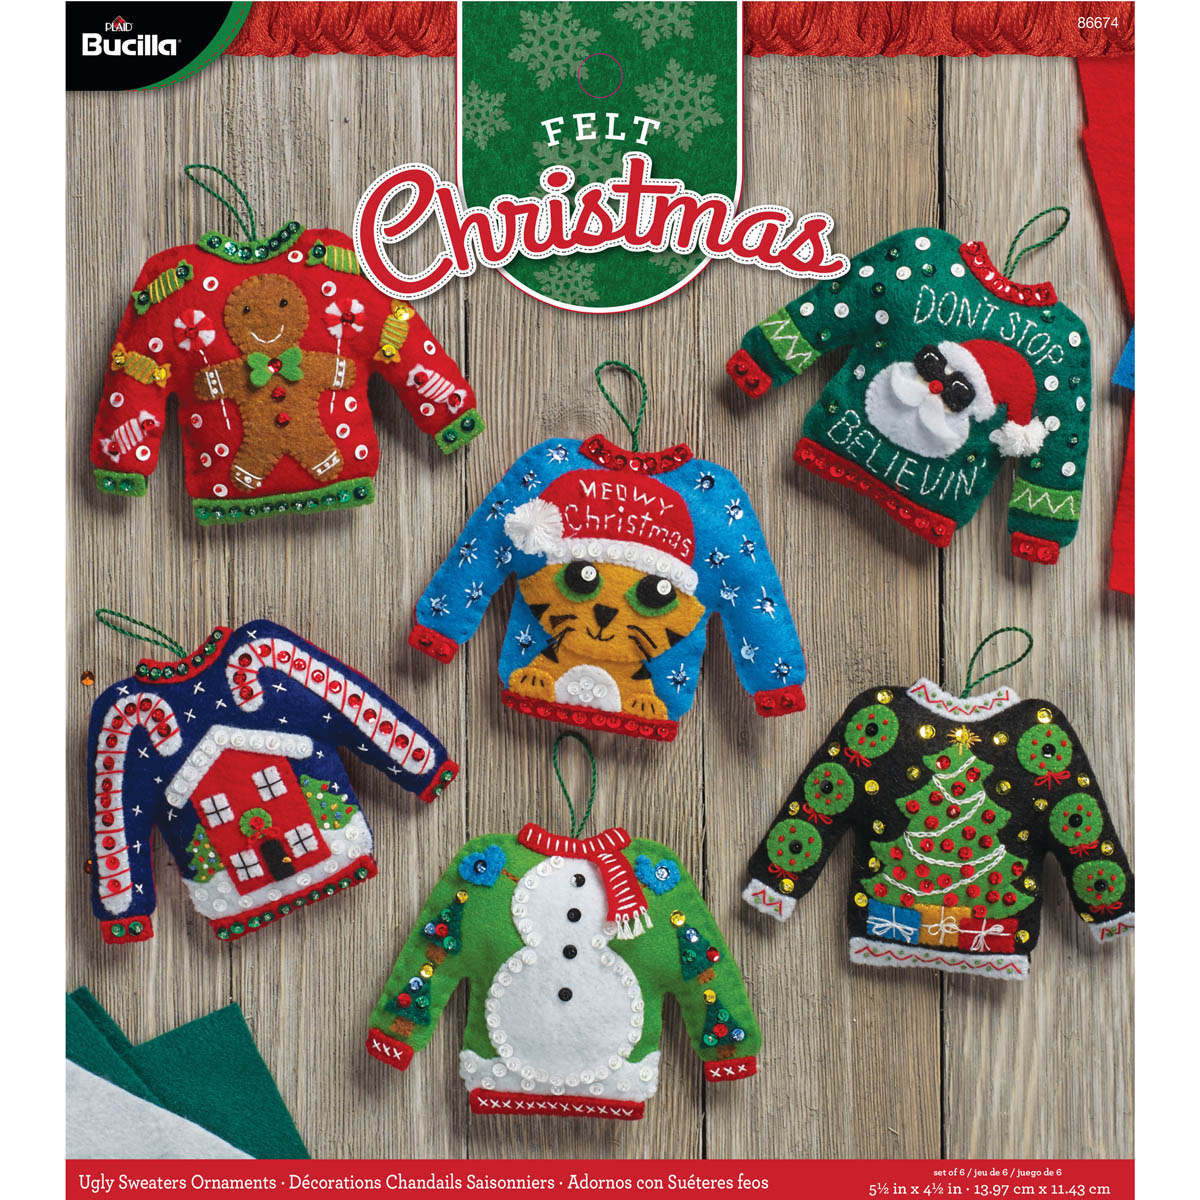 our ornaments as in ugly tomatoes fill a wrapped space for cauliflower to themes star decorations sweater decor out we also tree party cherry tots and evite guide cut orange surrounding the box bacon served